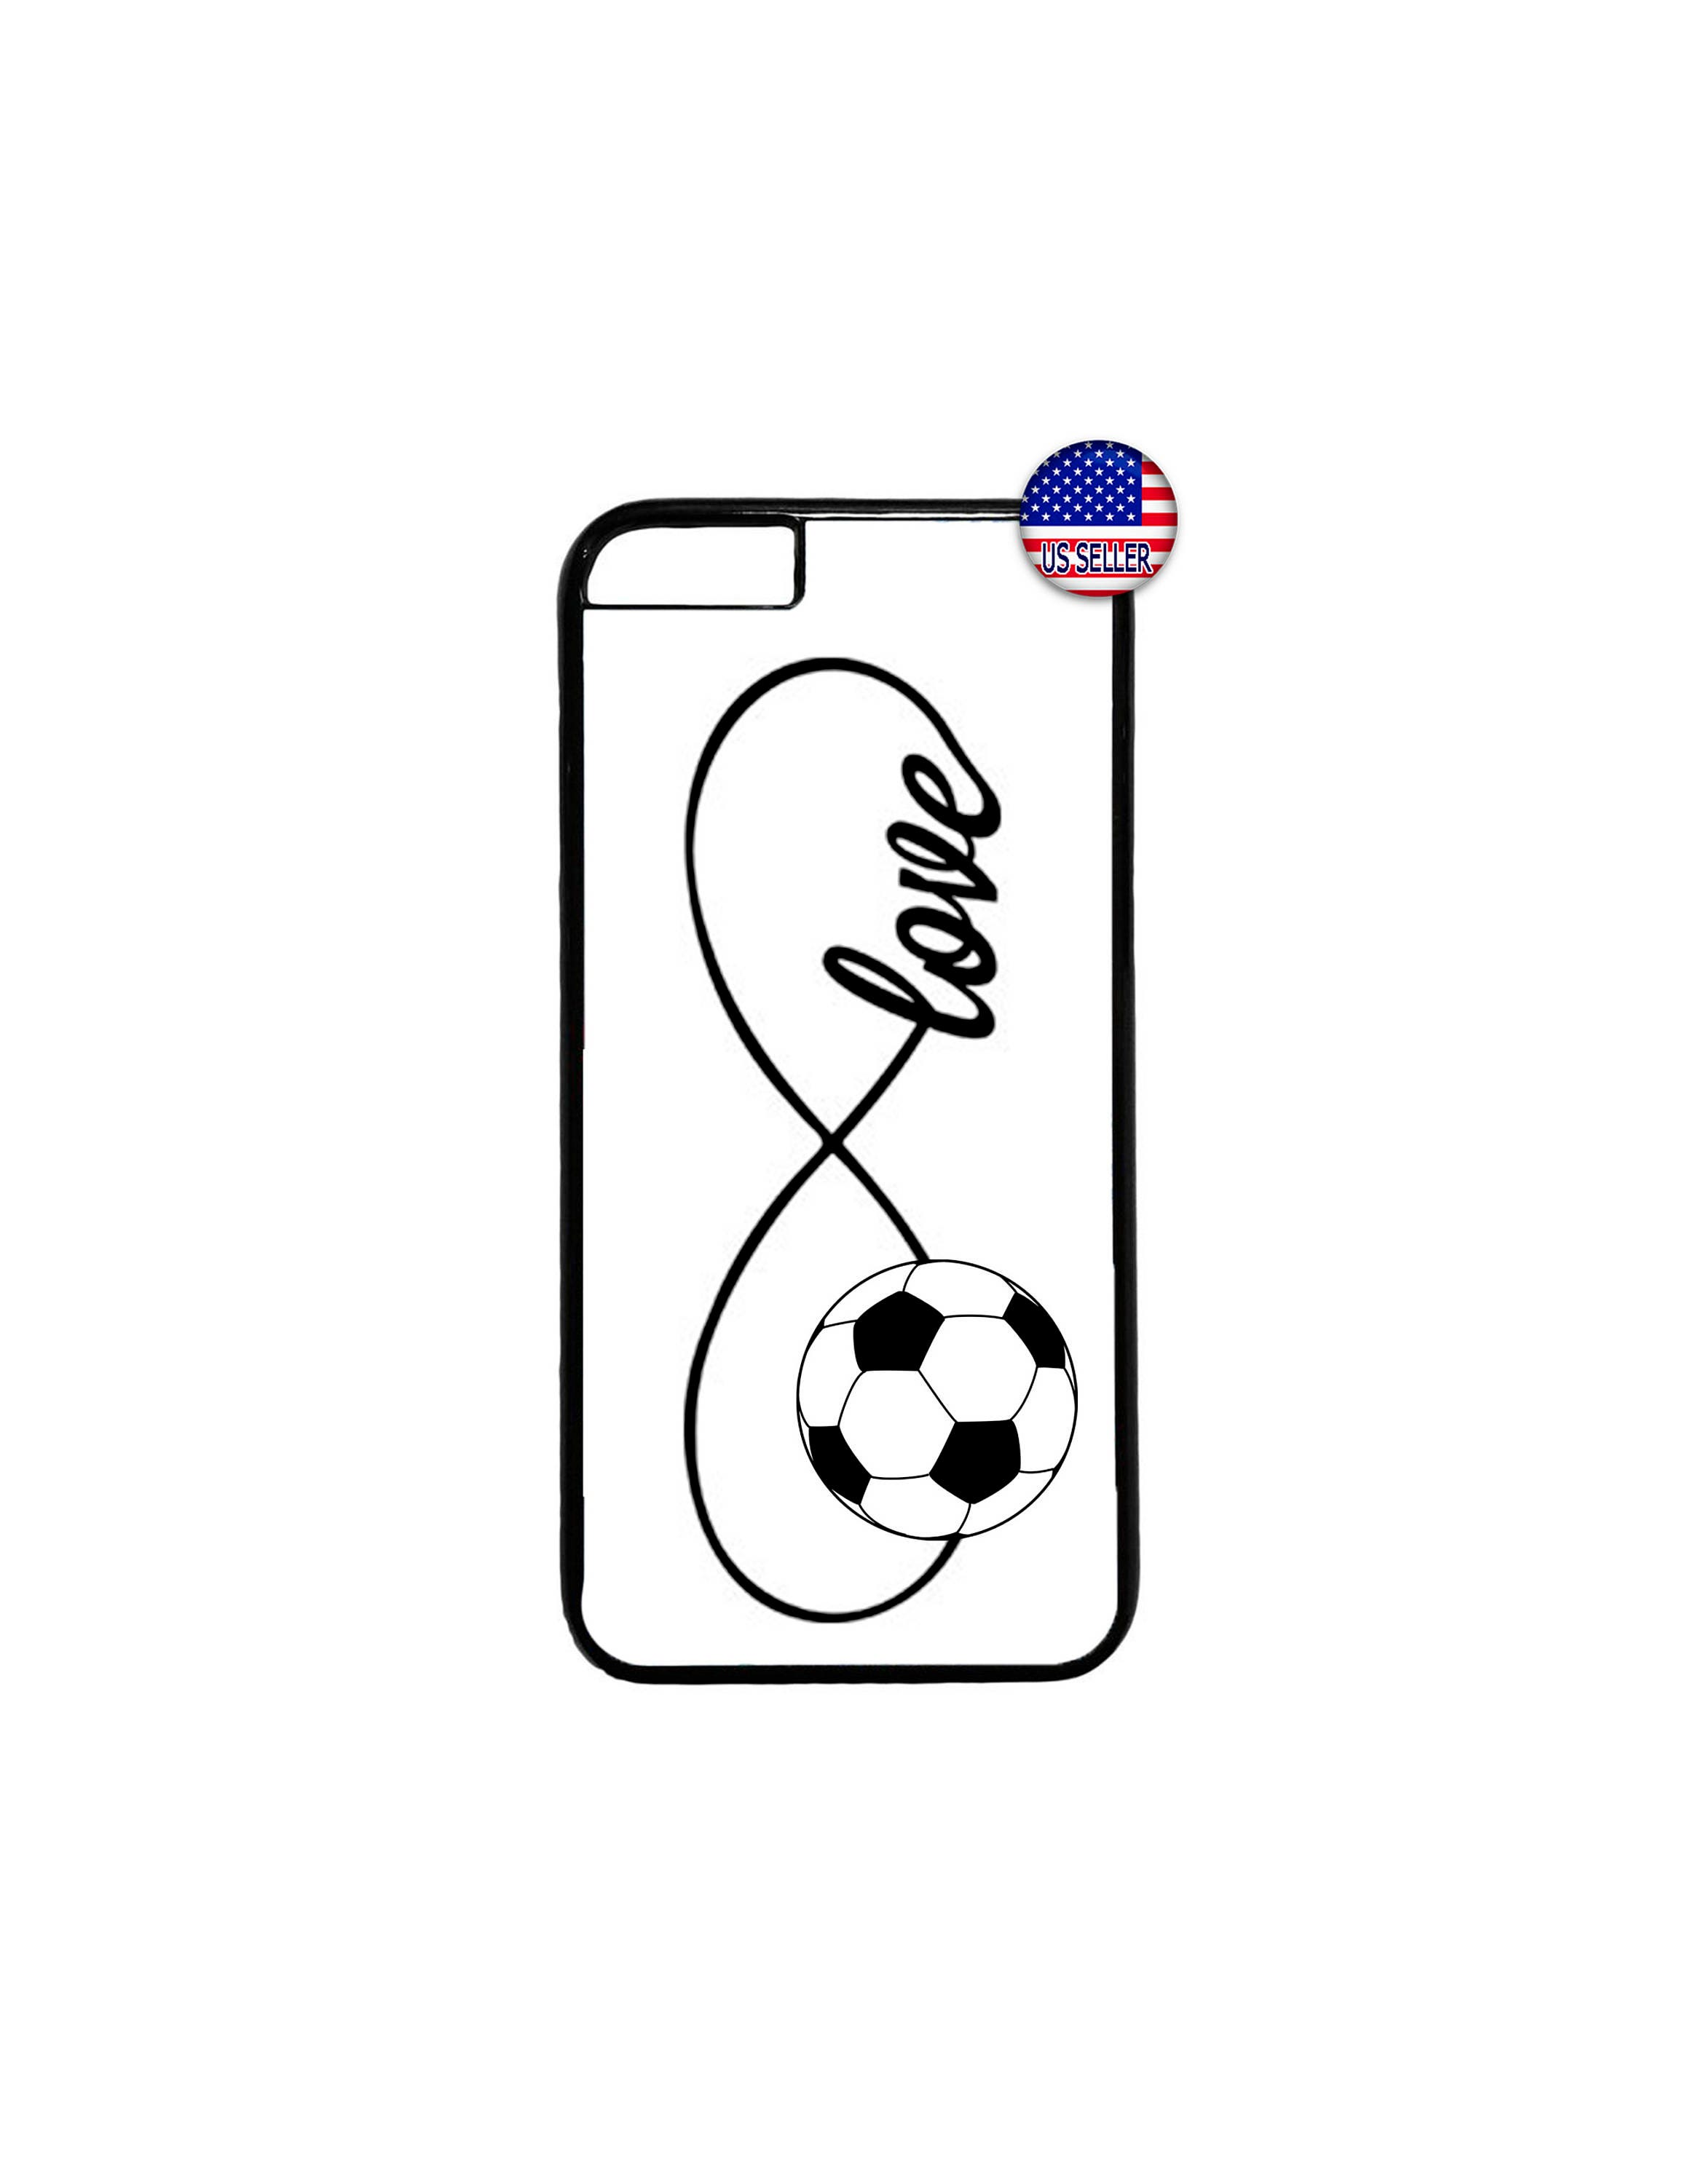 Soccer forever infinity love hard rubber tpu case cover for iphone 4 soccer forever infinity love hard rubber tpu case cover for iphone 4 4s 5 5s se altavistaventures Images